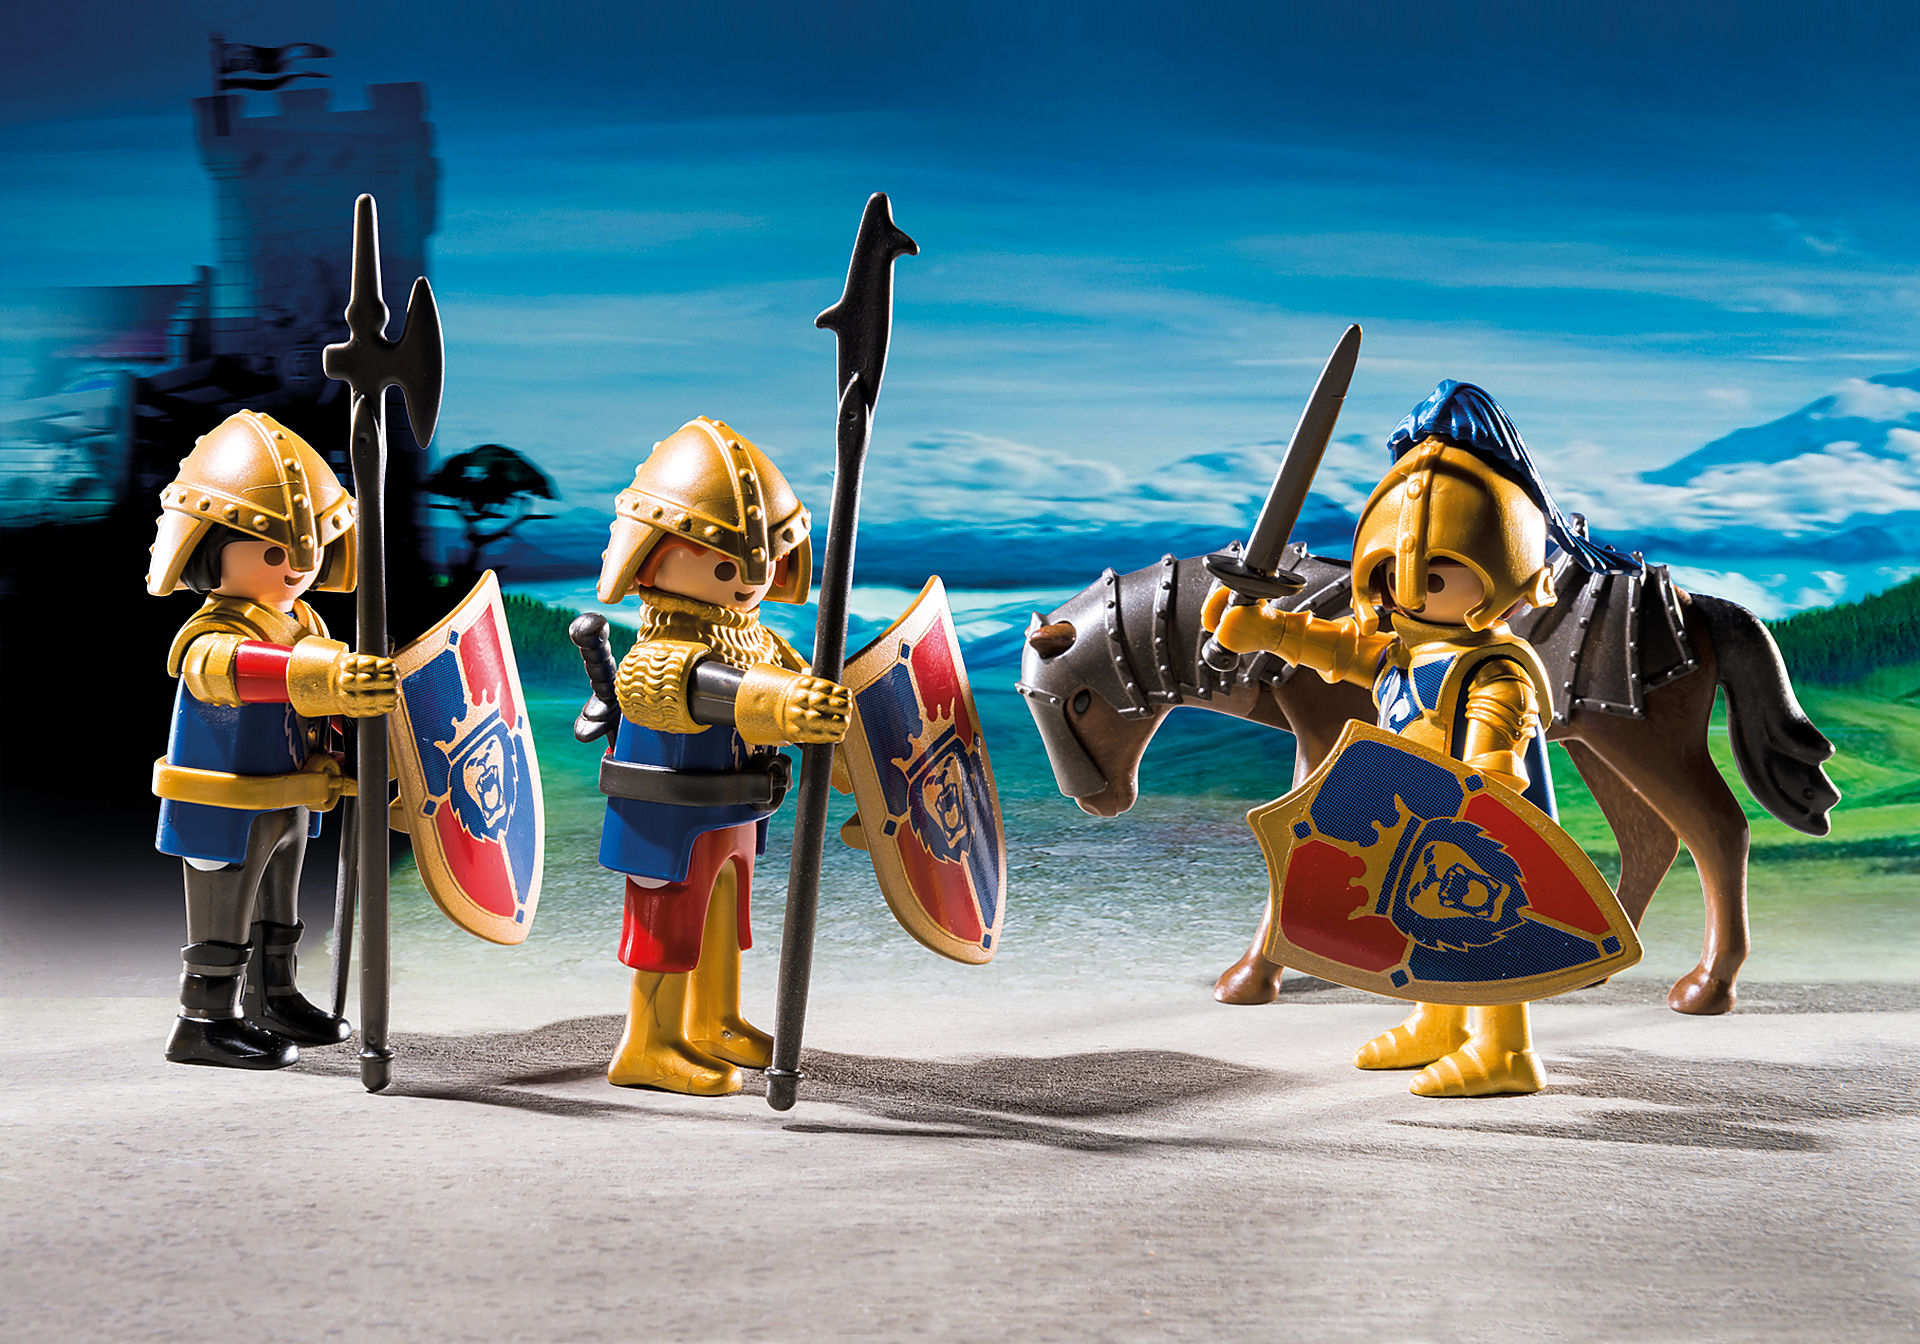 http://media.playmobil.com/i/playmobil/6006_product_extra1/Royal Lion Knights